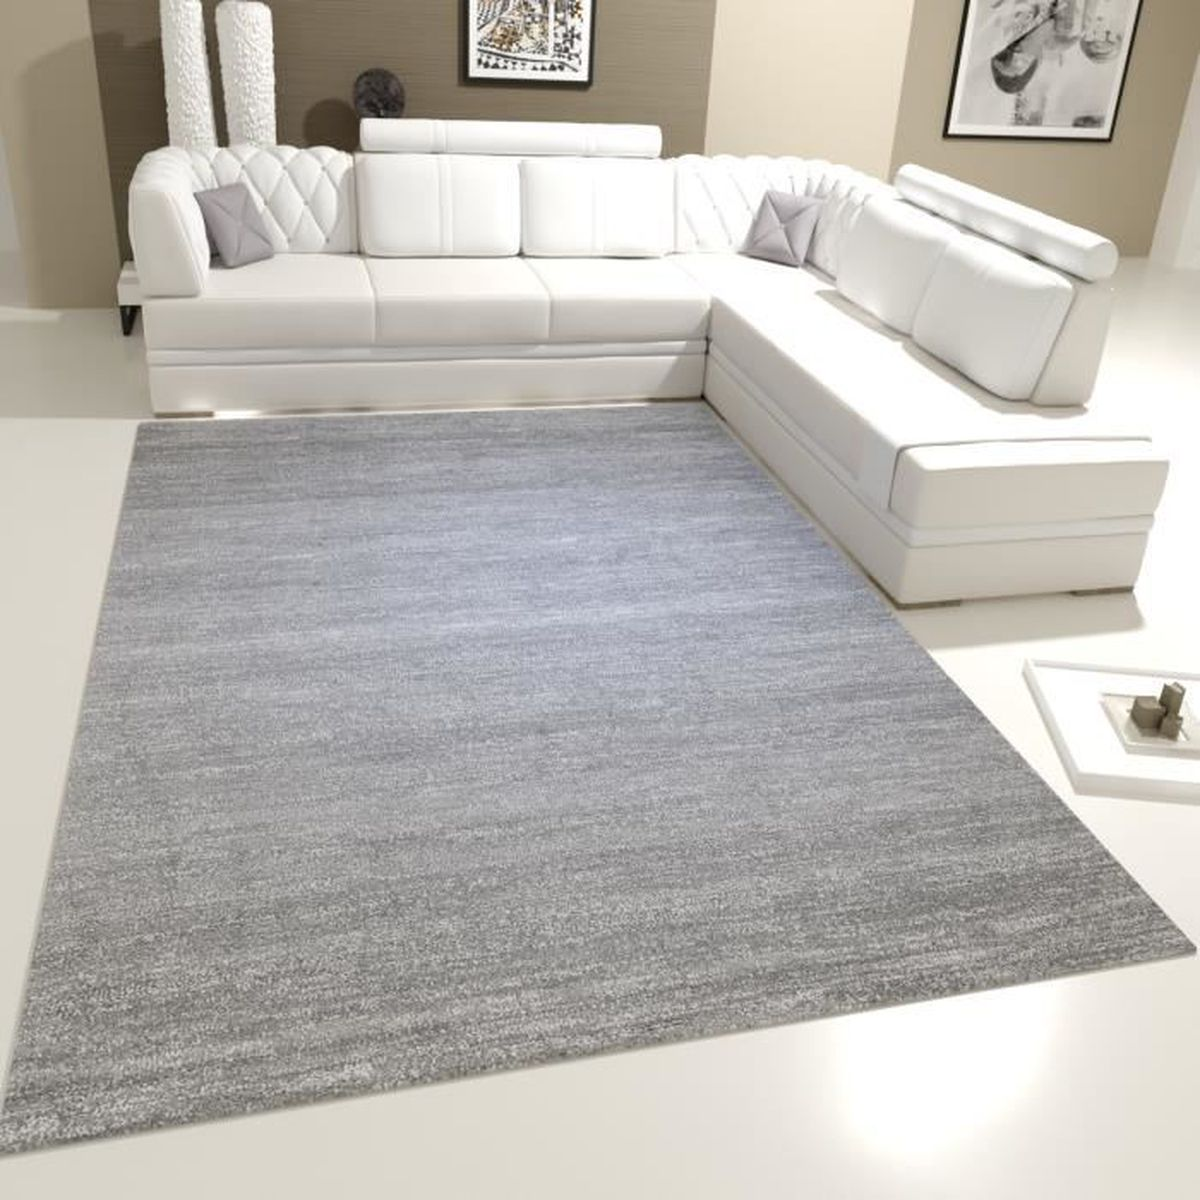 tapis salon gris. Black Bedroom Furniture Sets. Home Design Ideas